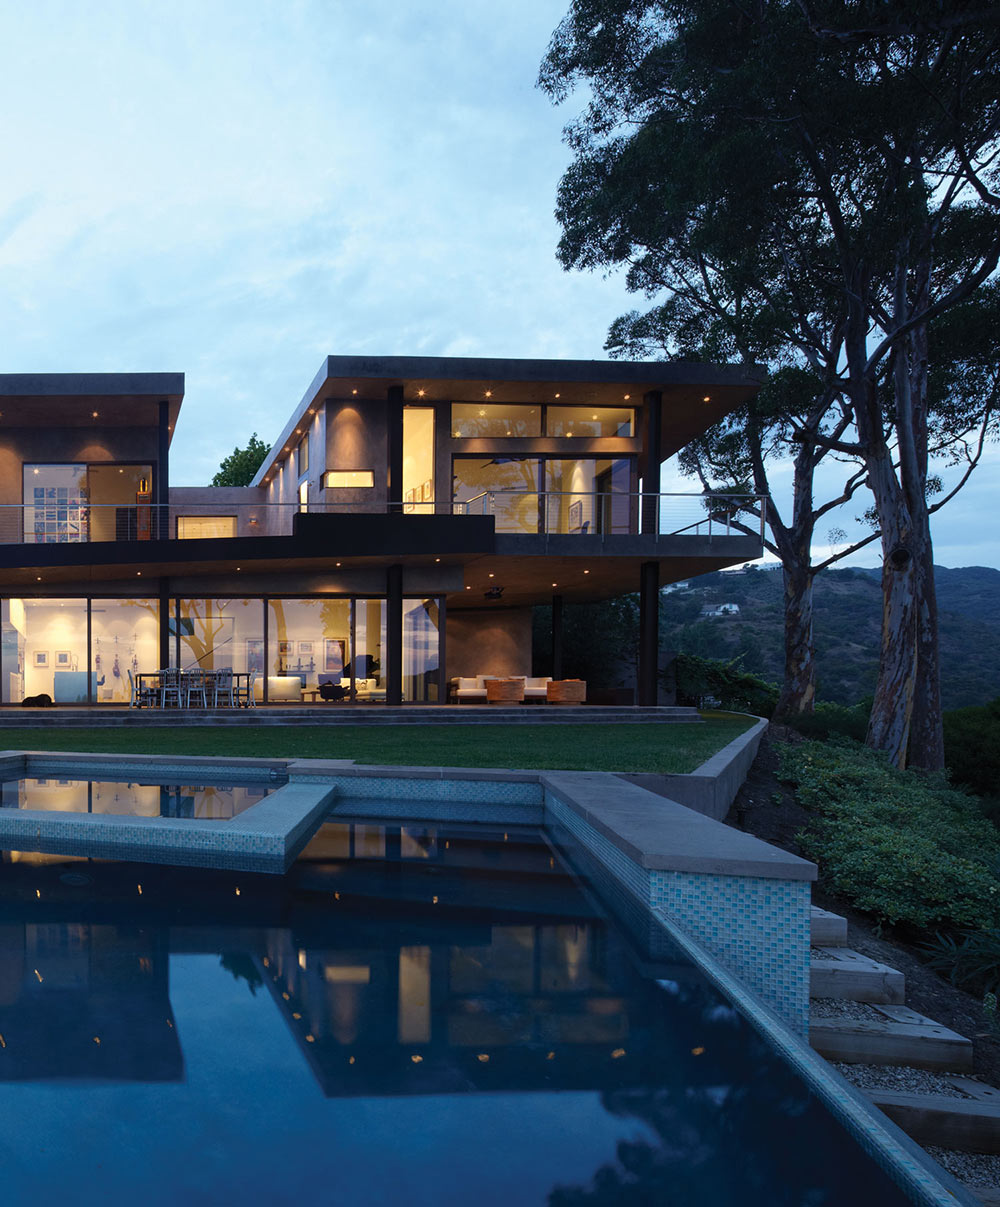 Pool, Garden, Mandeville Canyon Residence in Los Angeles by Griffin Enright Architects